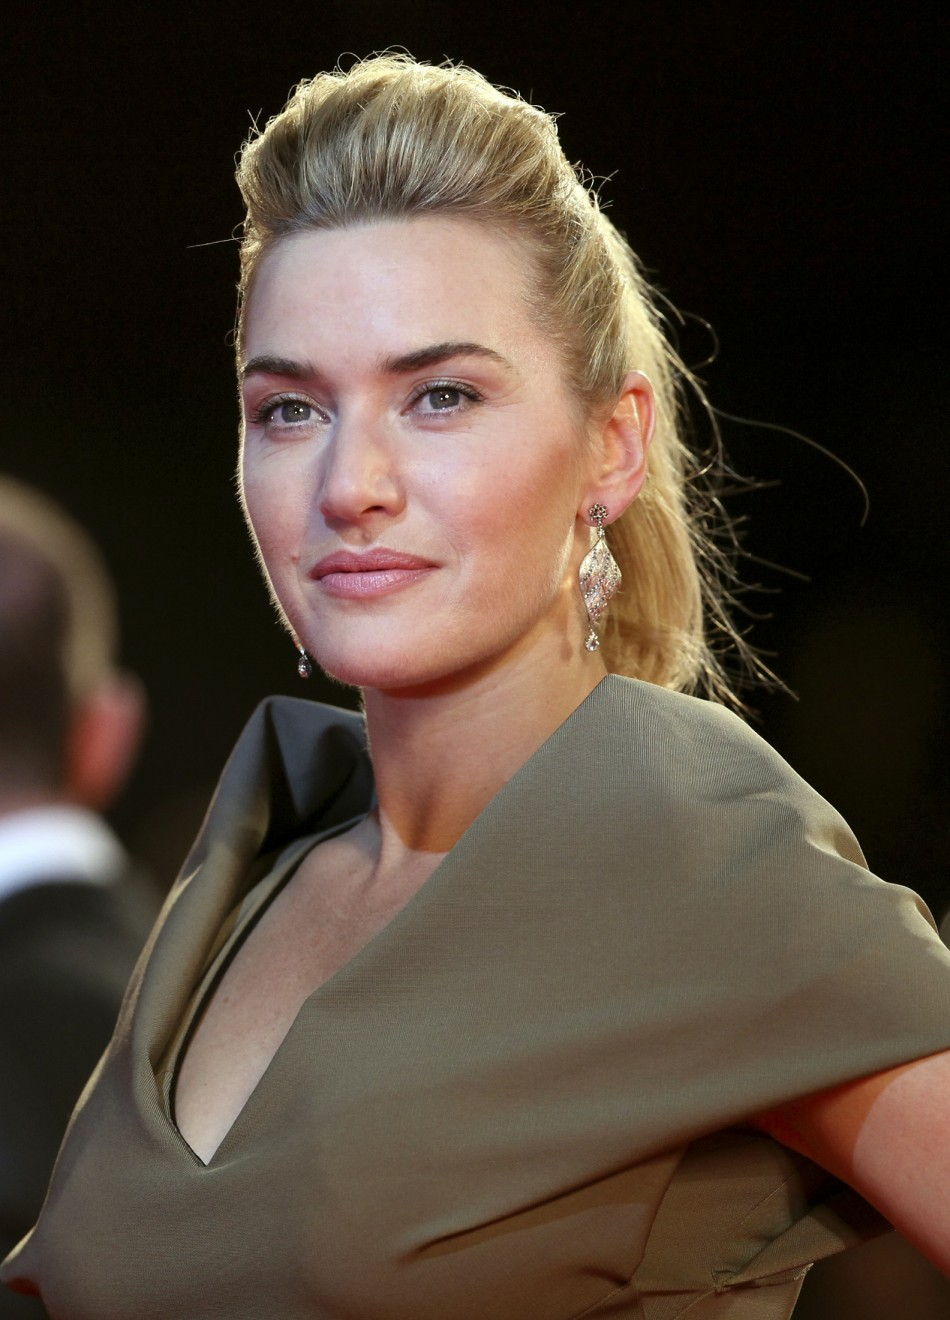 titanic song makes me throw up says kate winslet